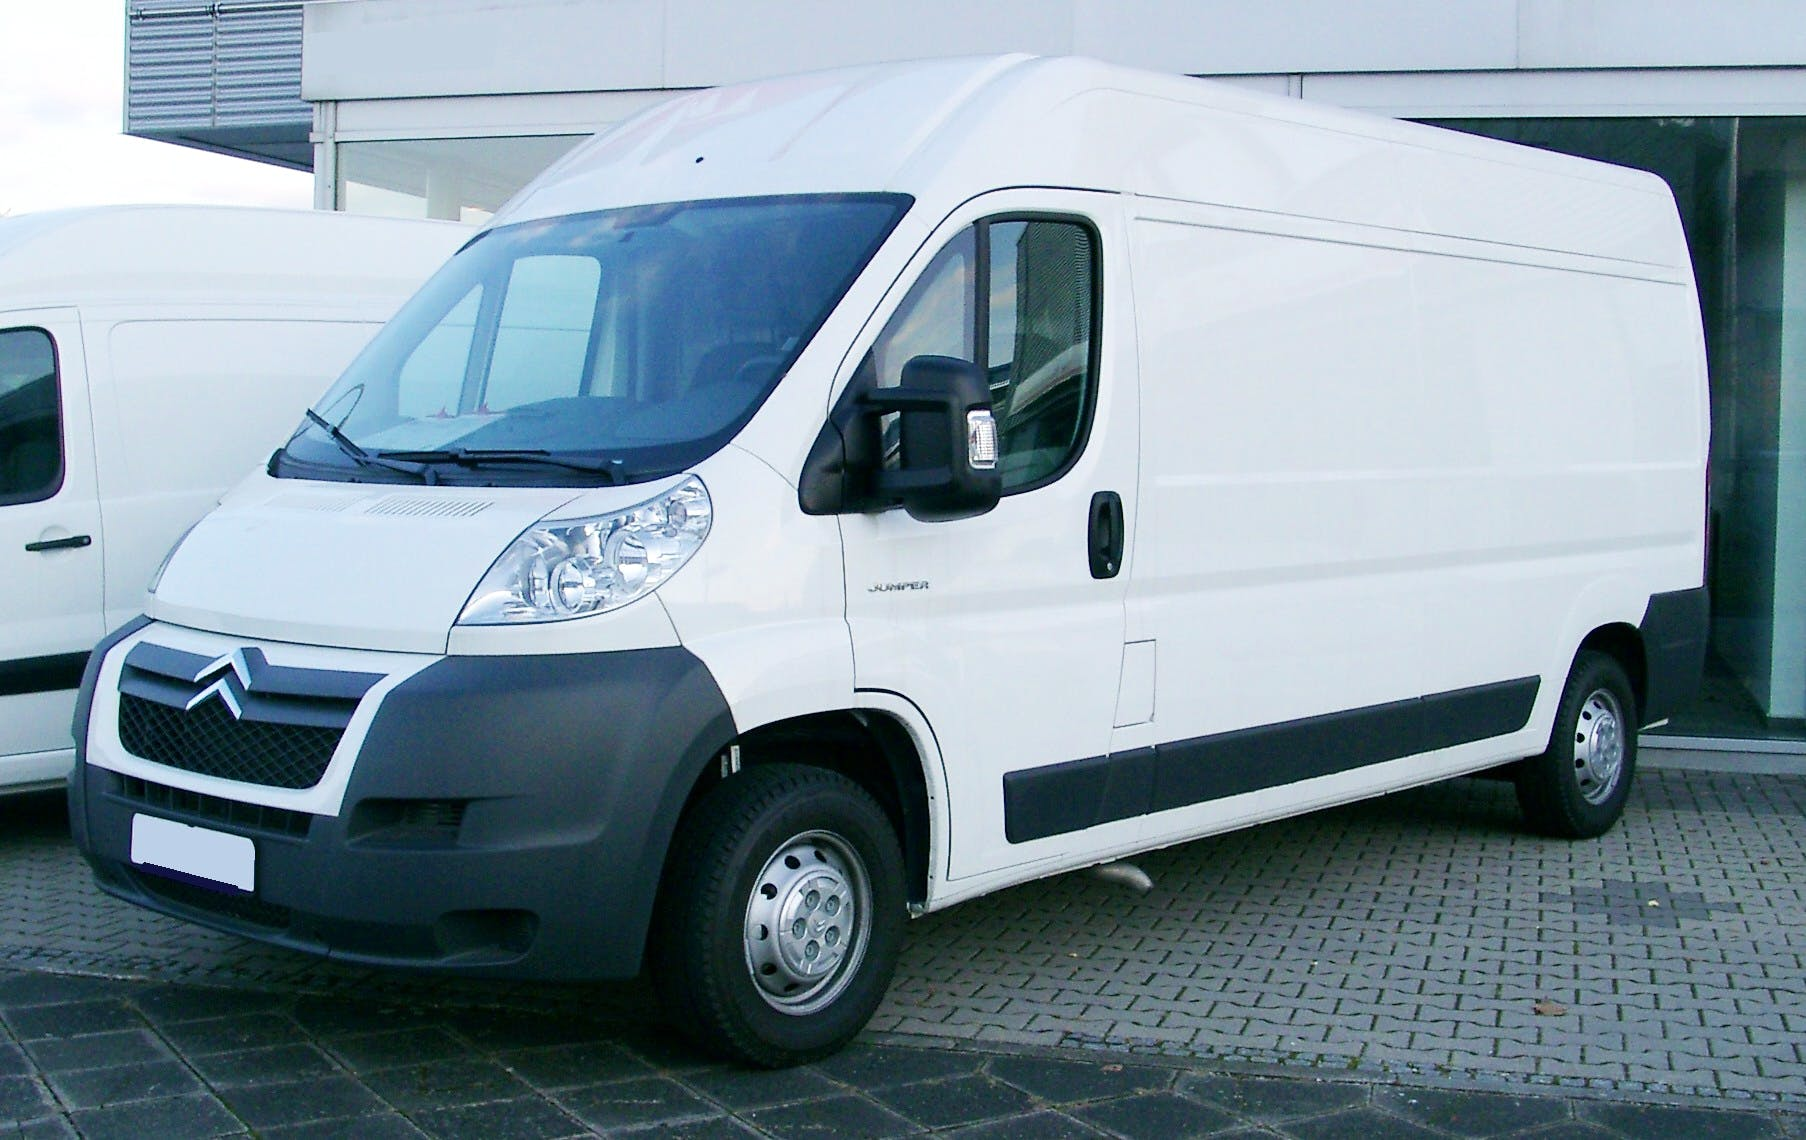 Citroen Jumper 12m3 long trajets, 2010, Diesel